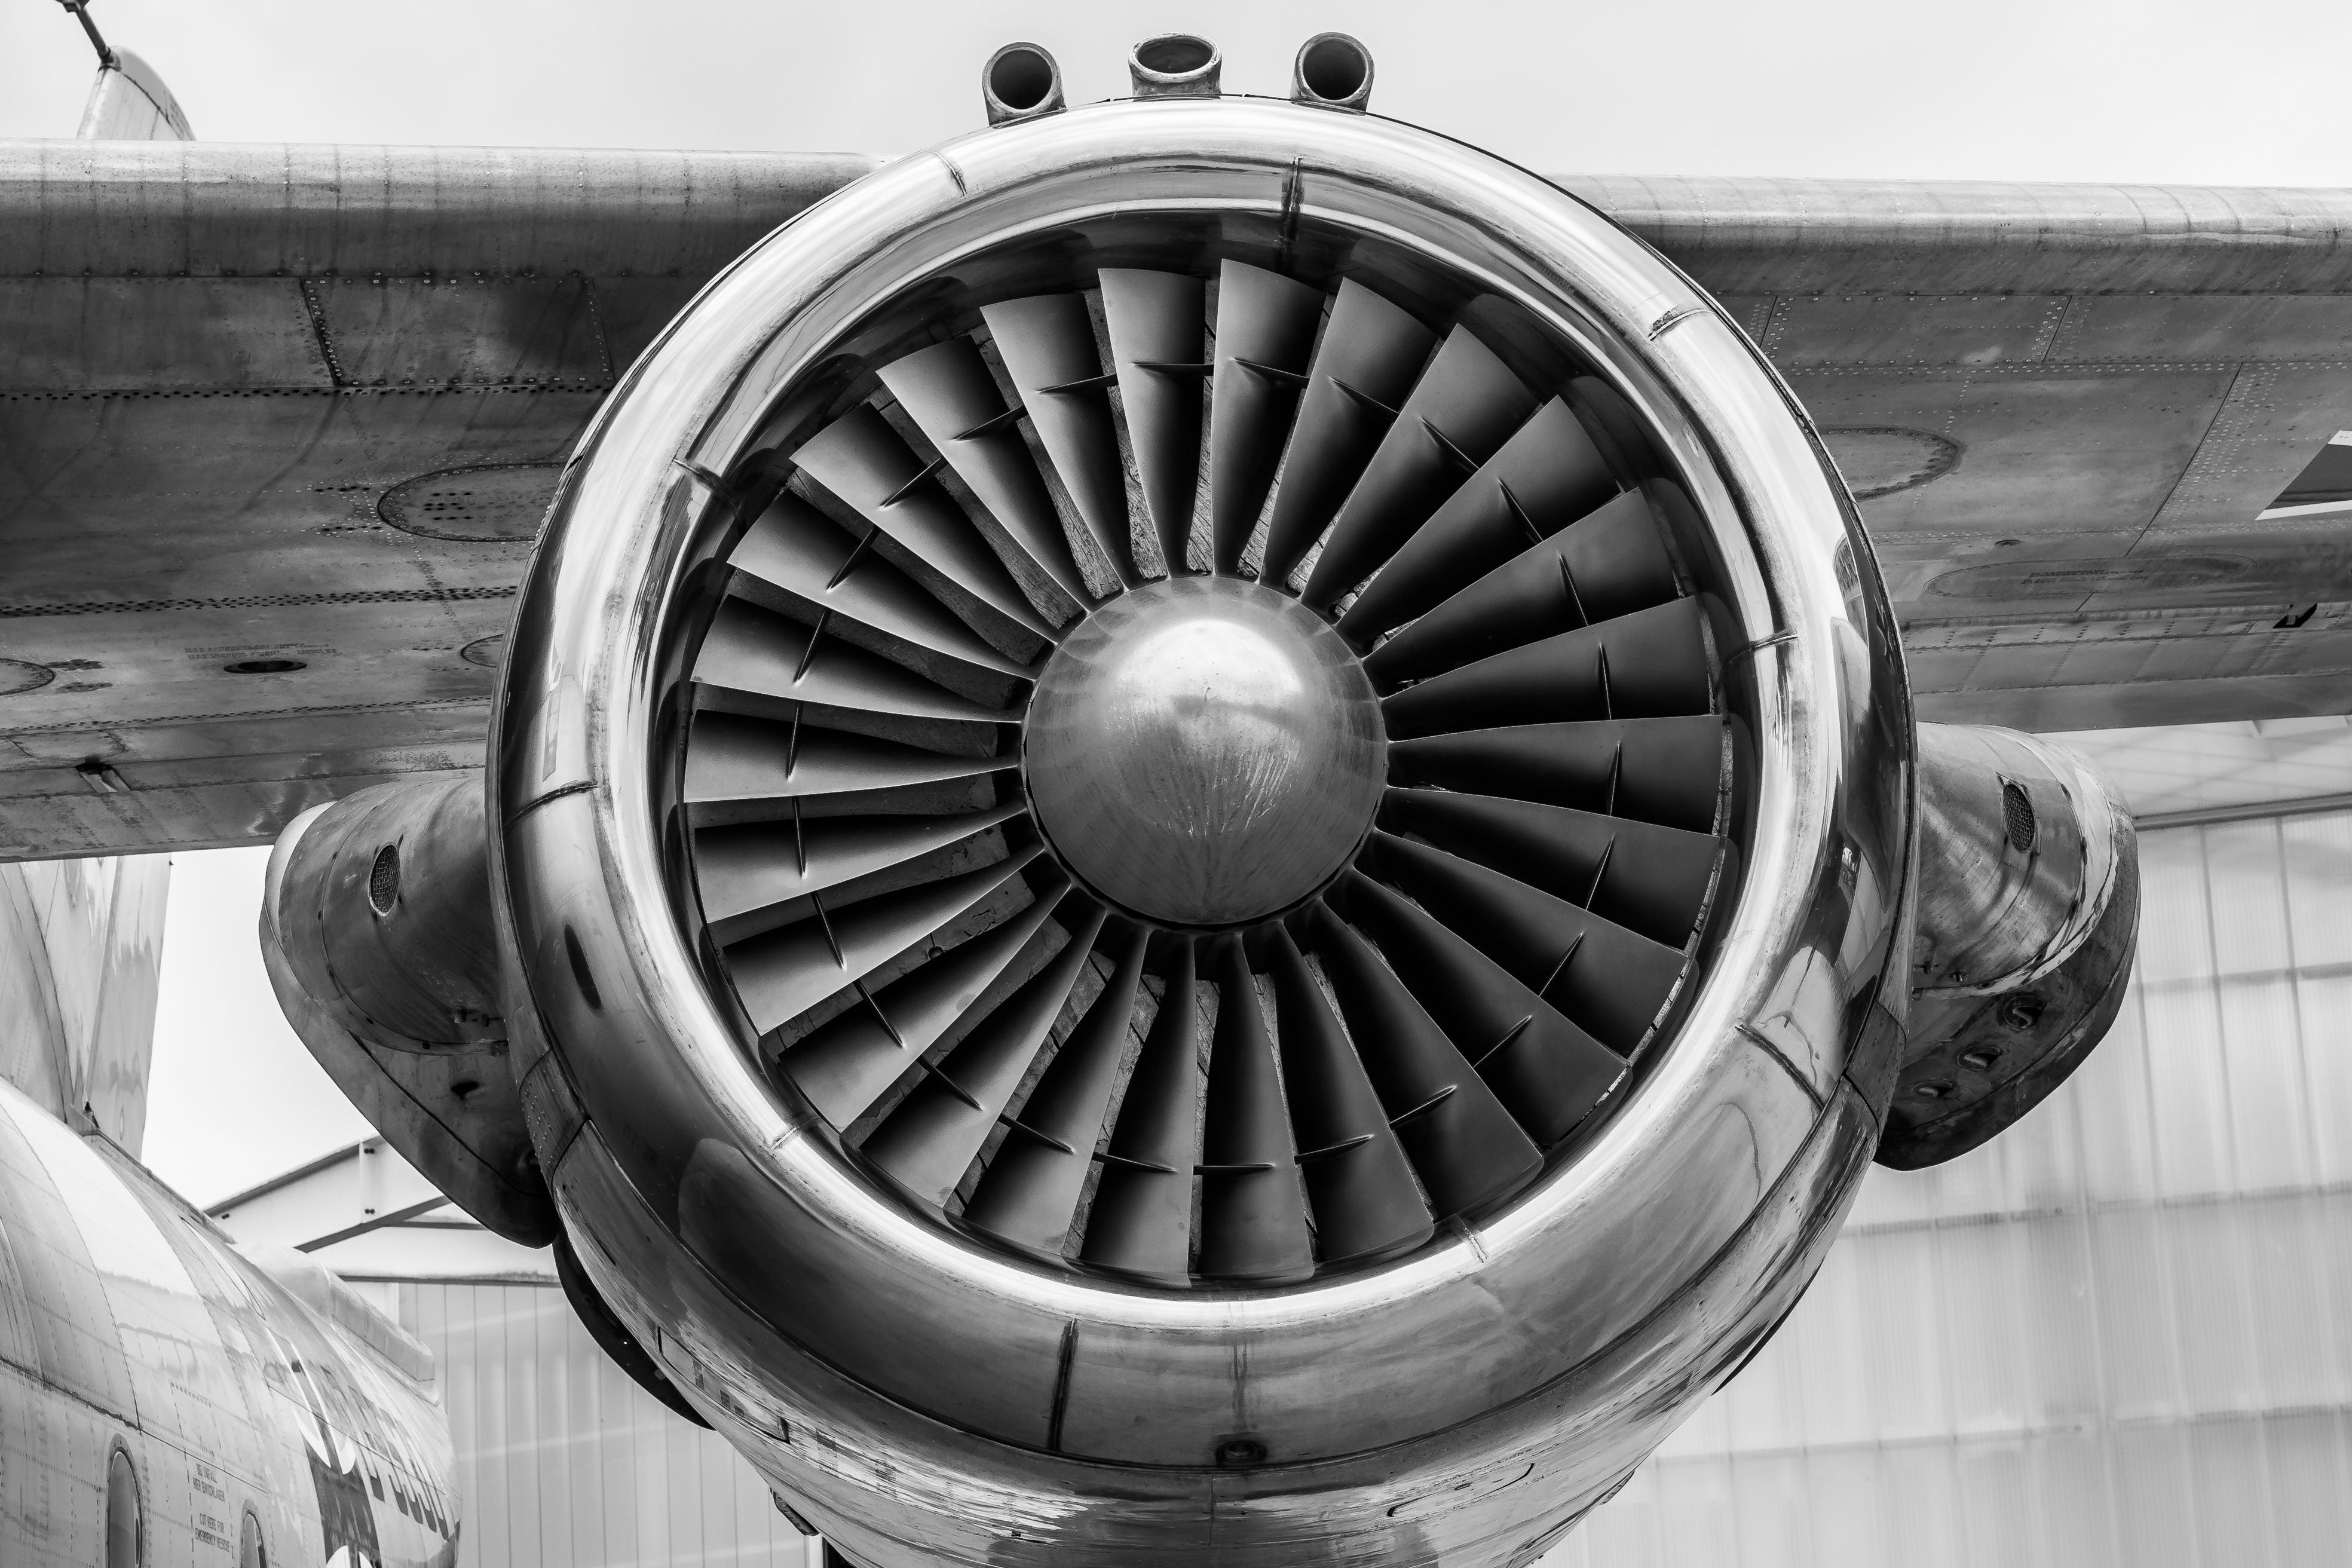 Grayscale Photography of Airliner Turbine